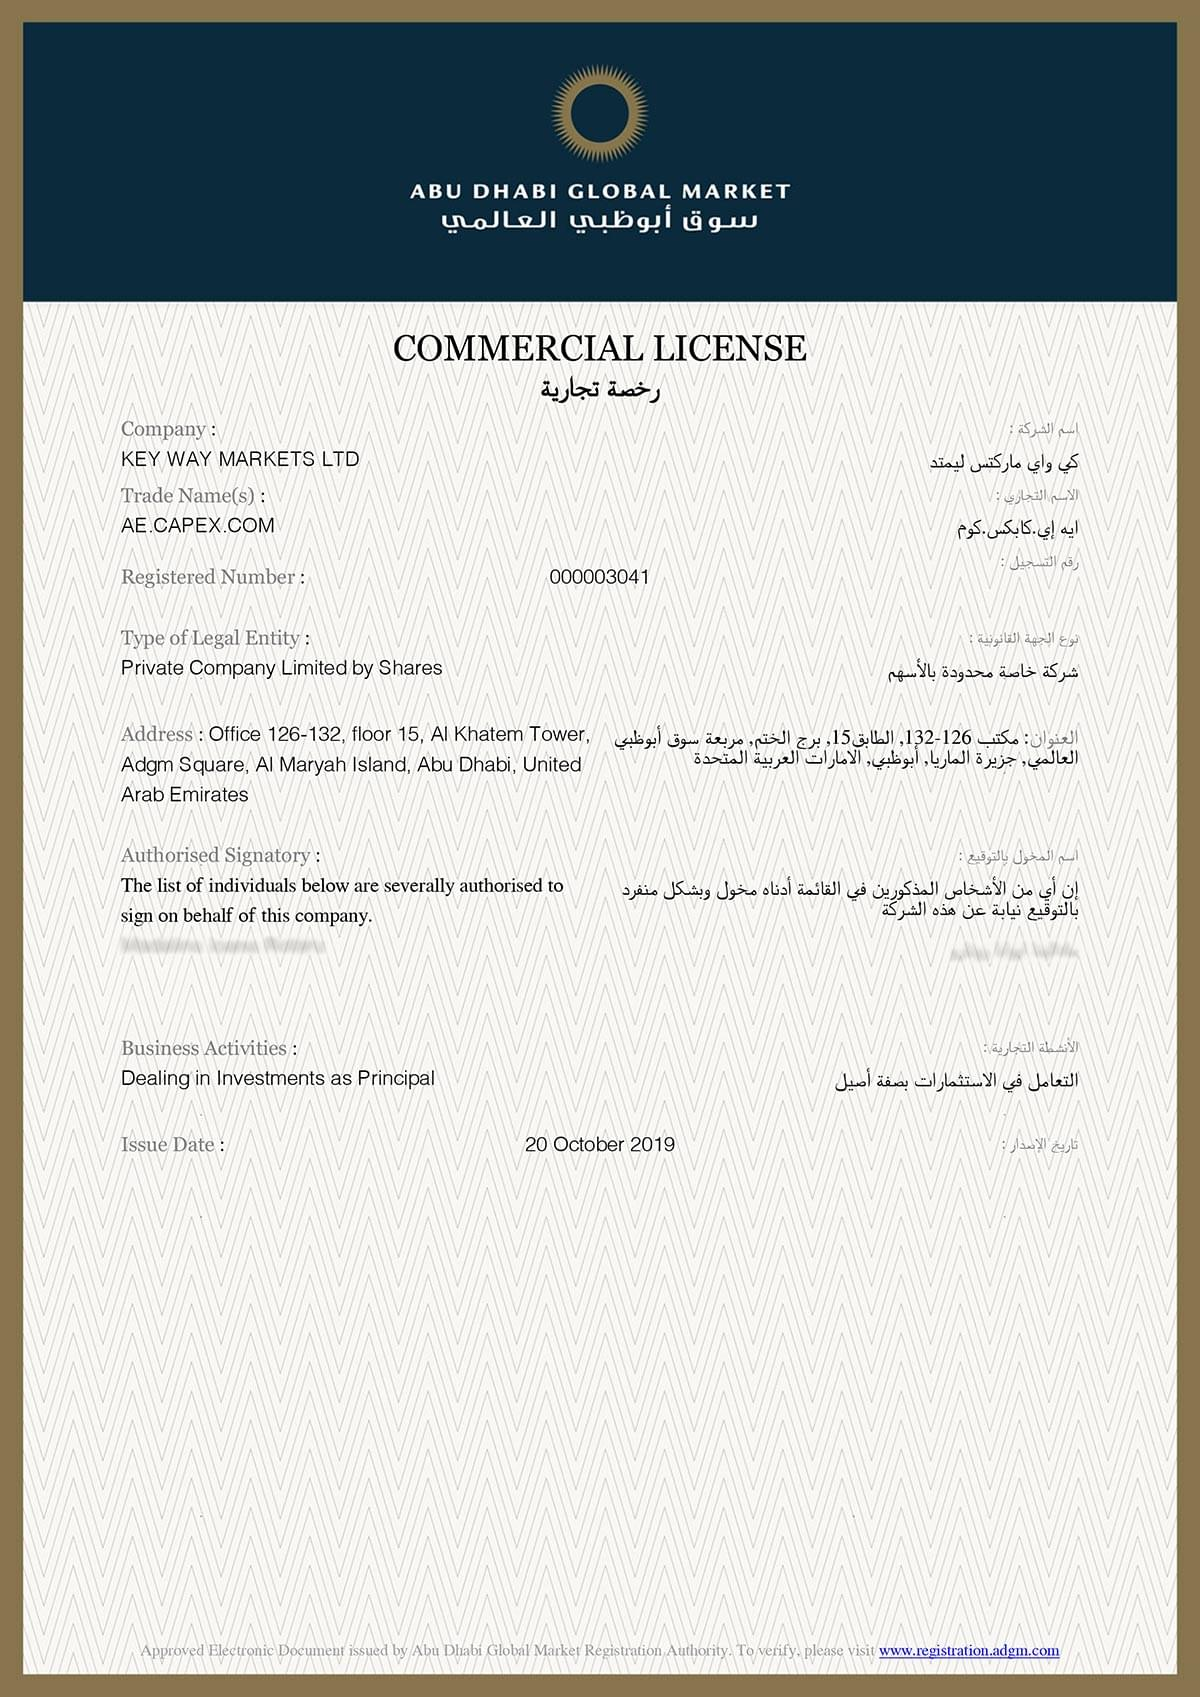 Trade name and commercial license